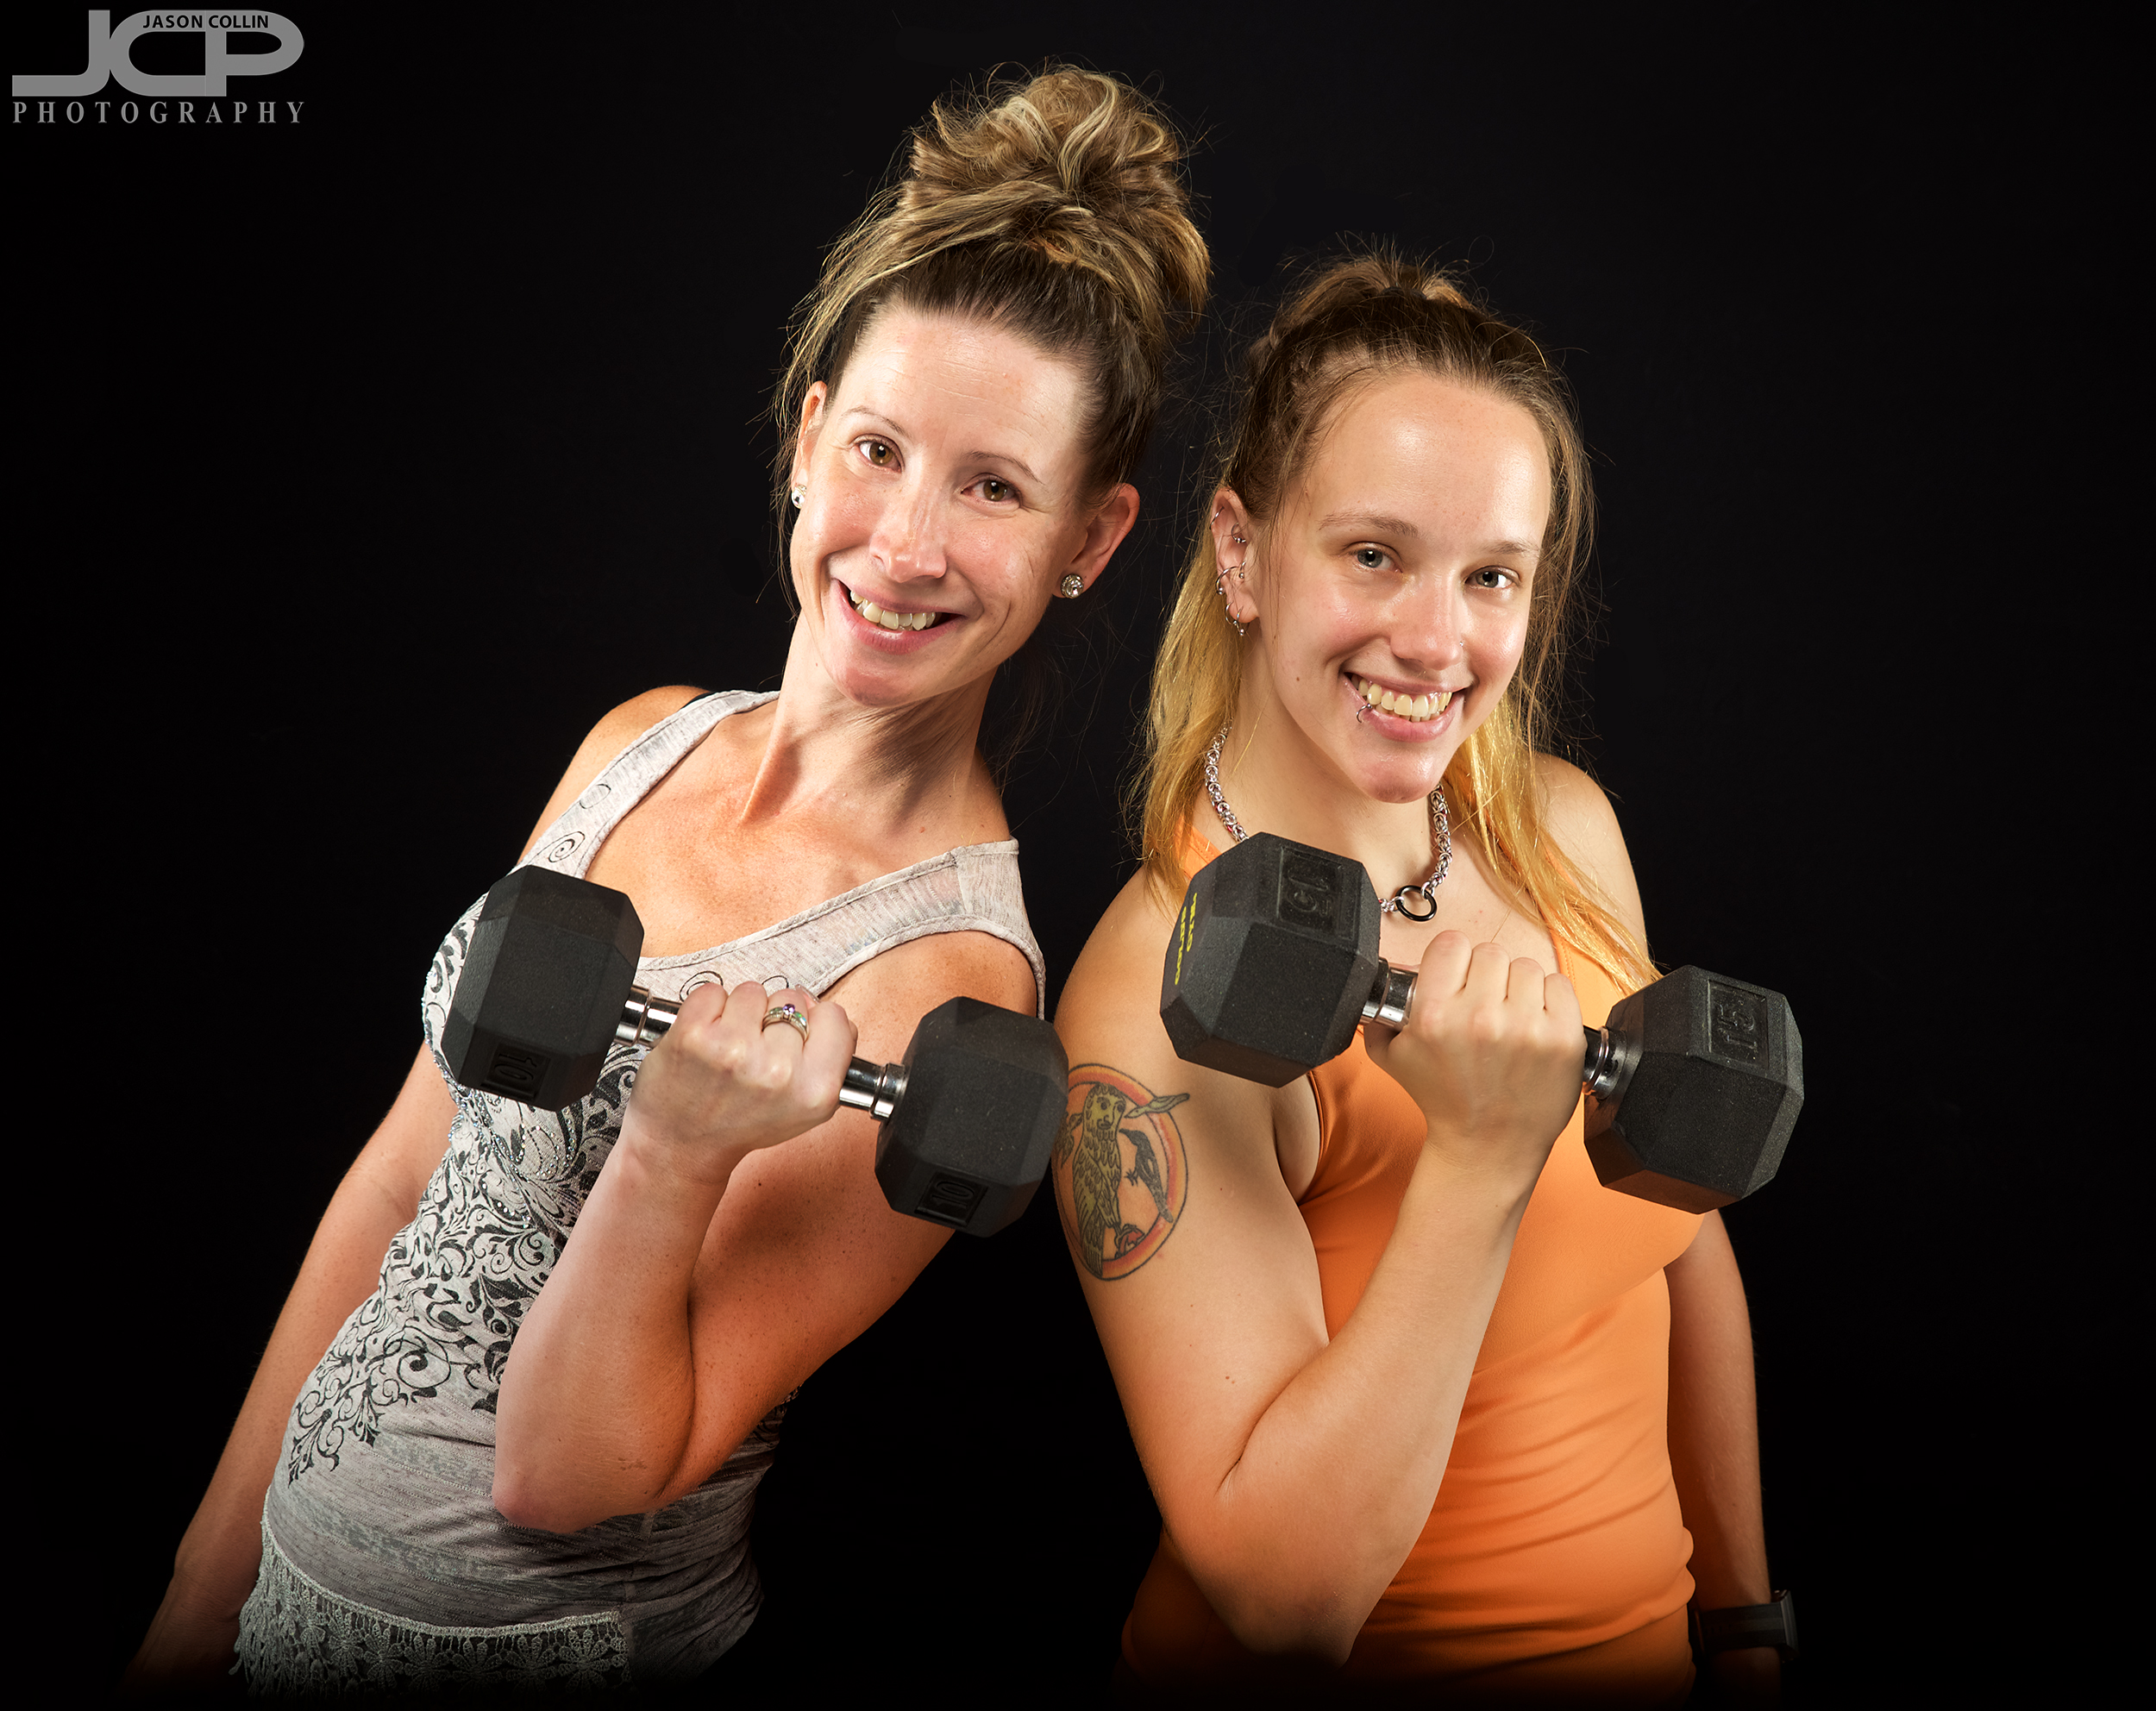 Jess and Jen flexing at the JCP Home Studio in Albuquerque, New Mexico -- Nikon D750 with Tamron 24-70mm f/2.8 G2 lens with a 3-light setup